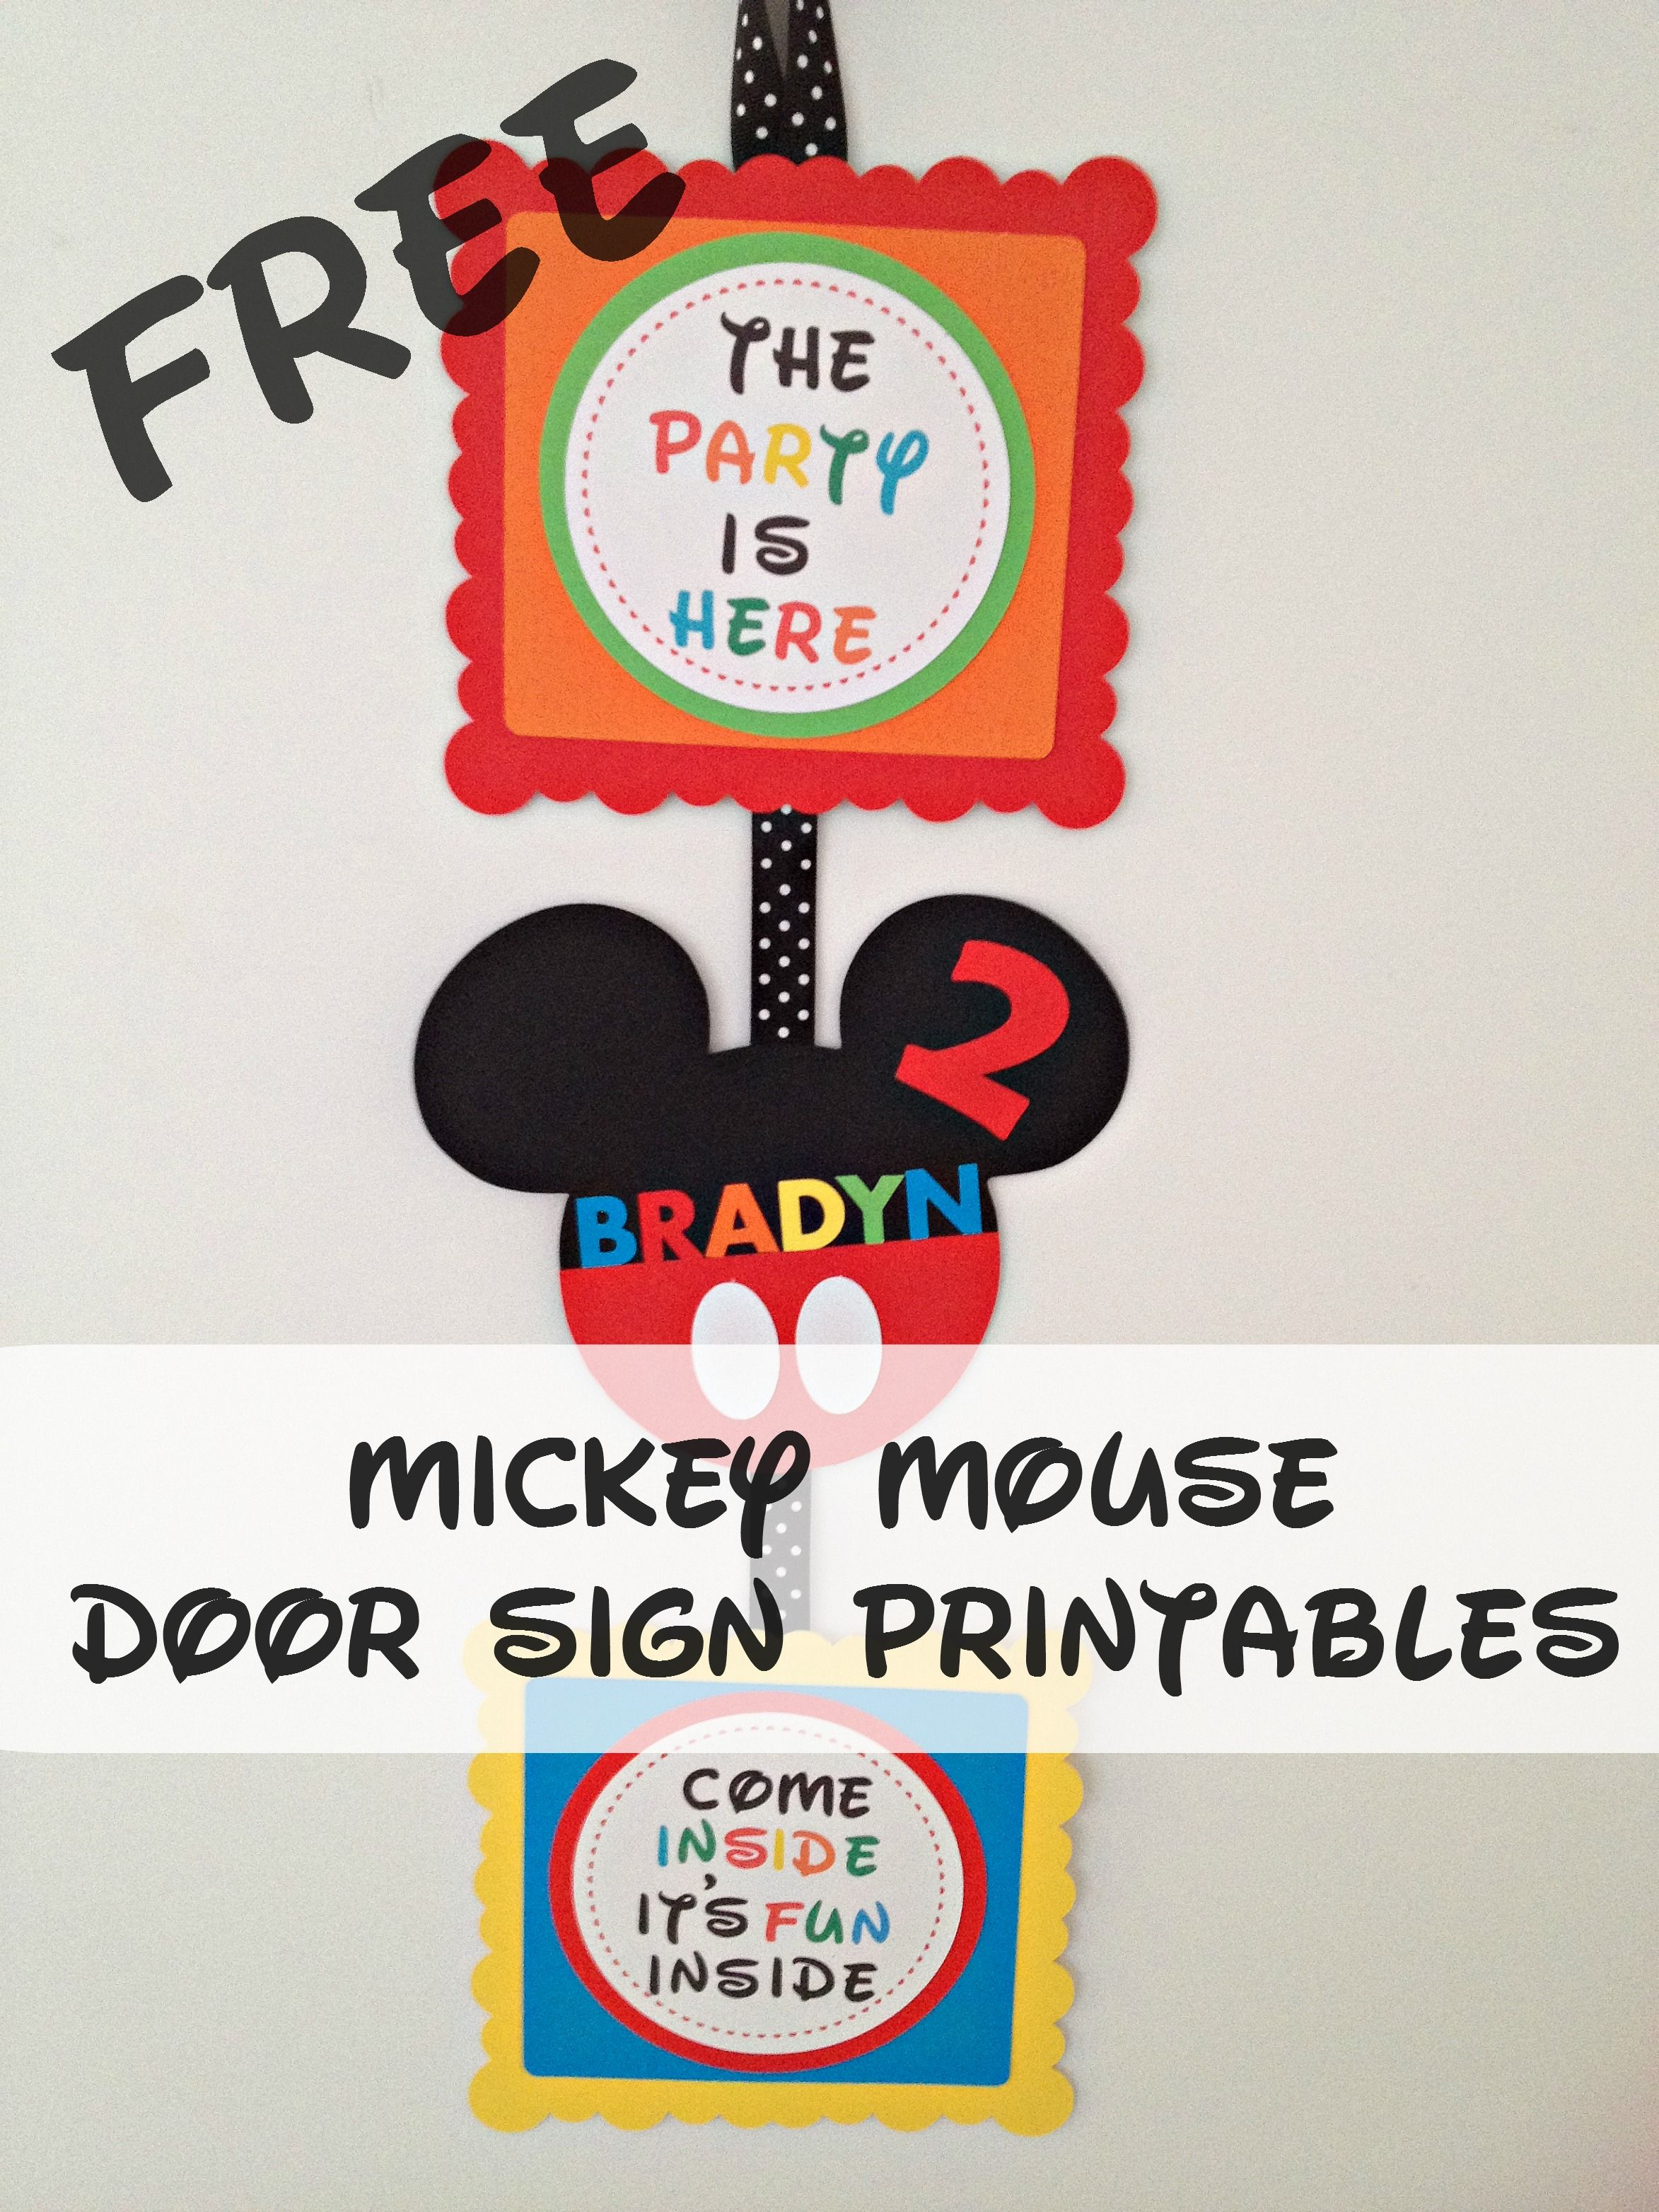 picture about Come Inside It's Fun Inside Free Printable named How in direction of create a Mickey Mouse Encouraged Get together Doorway Signal with